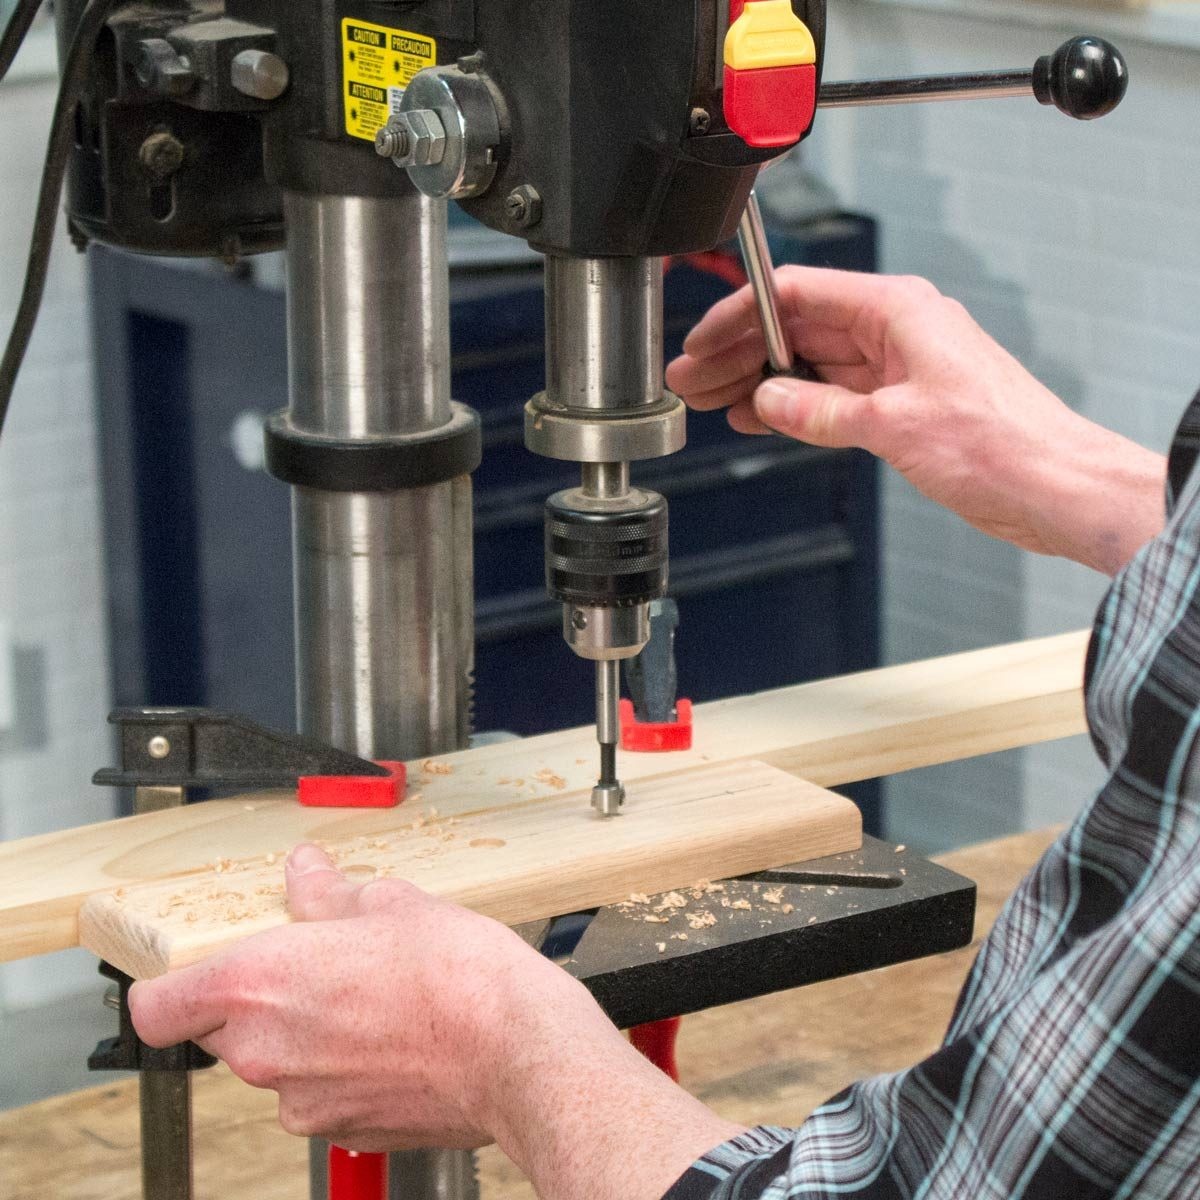 Magnetic Knife Strip Drill holes